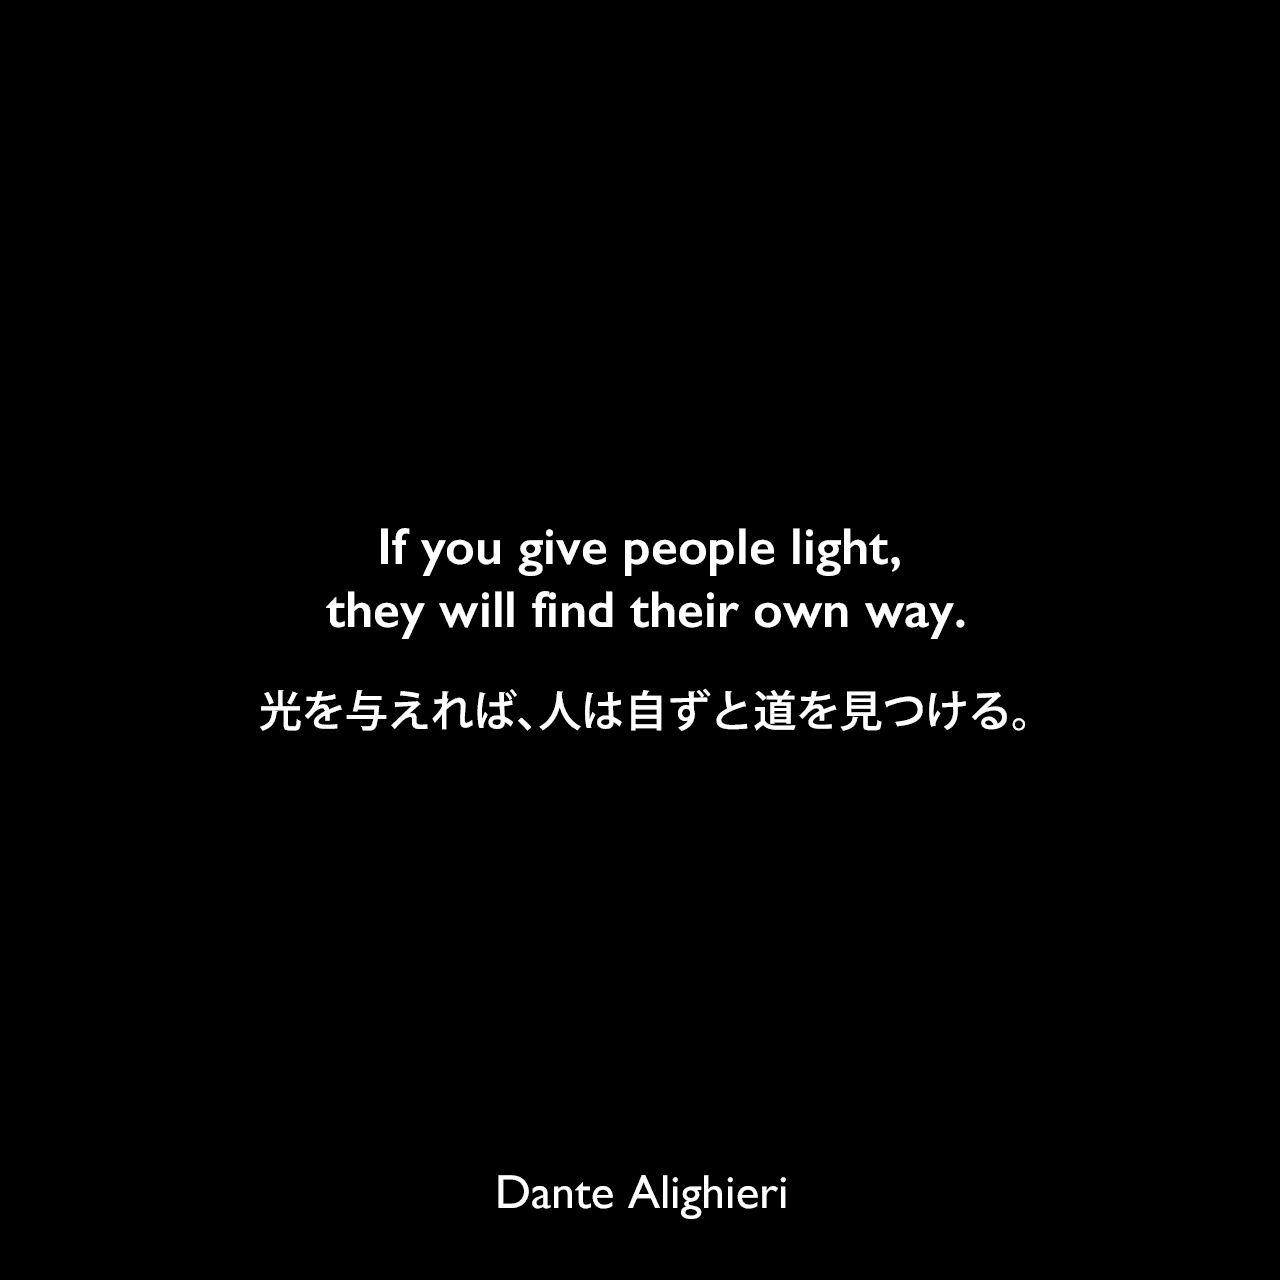 If you give people light, they will find their own way.光を与えれば、人は自ずと道を見つける。Dante Alighieri